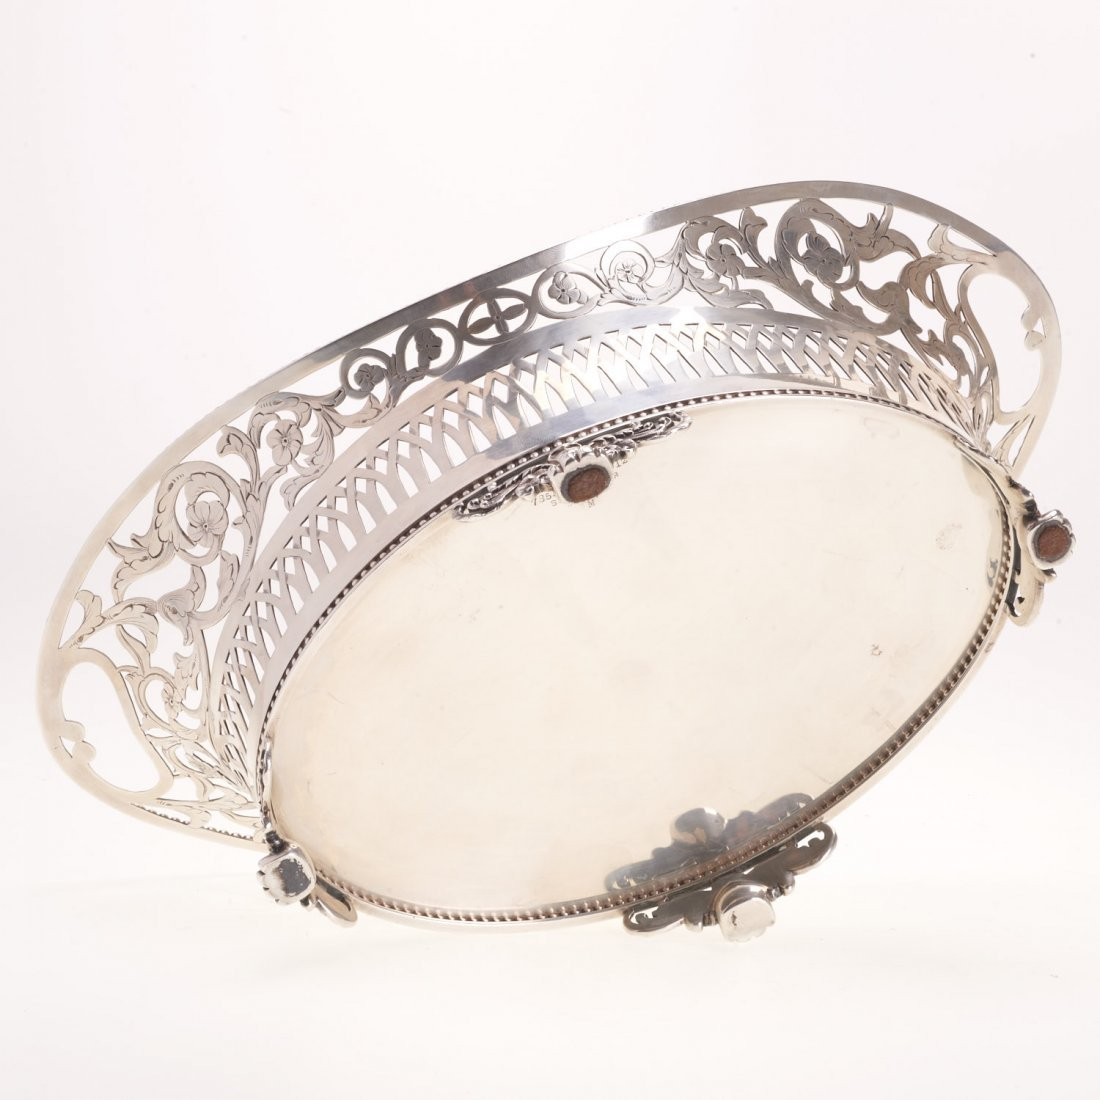 Tiffany & Co. reticulated sterling silver basket - 5